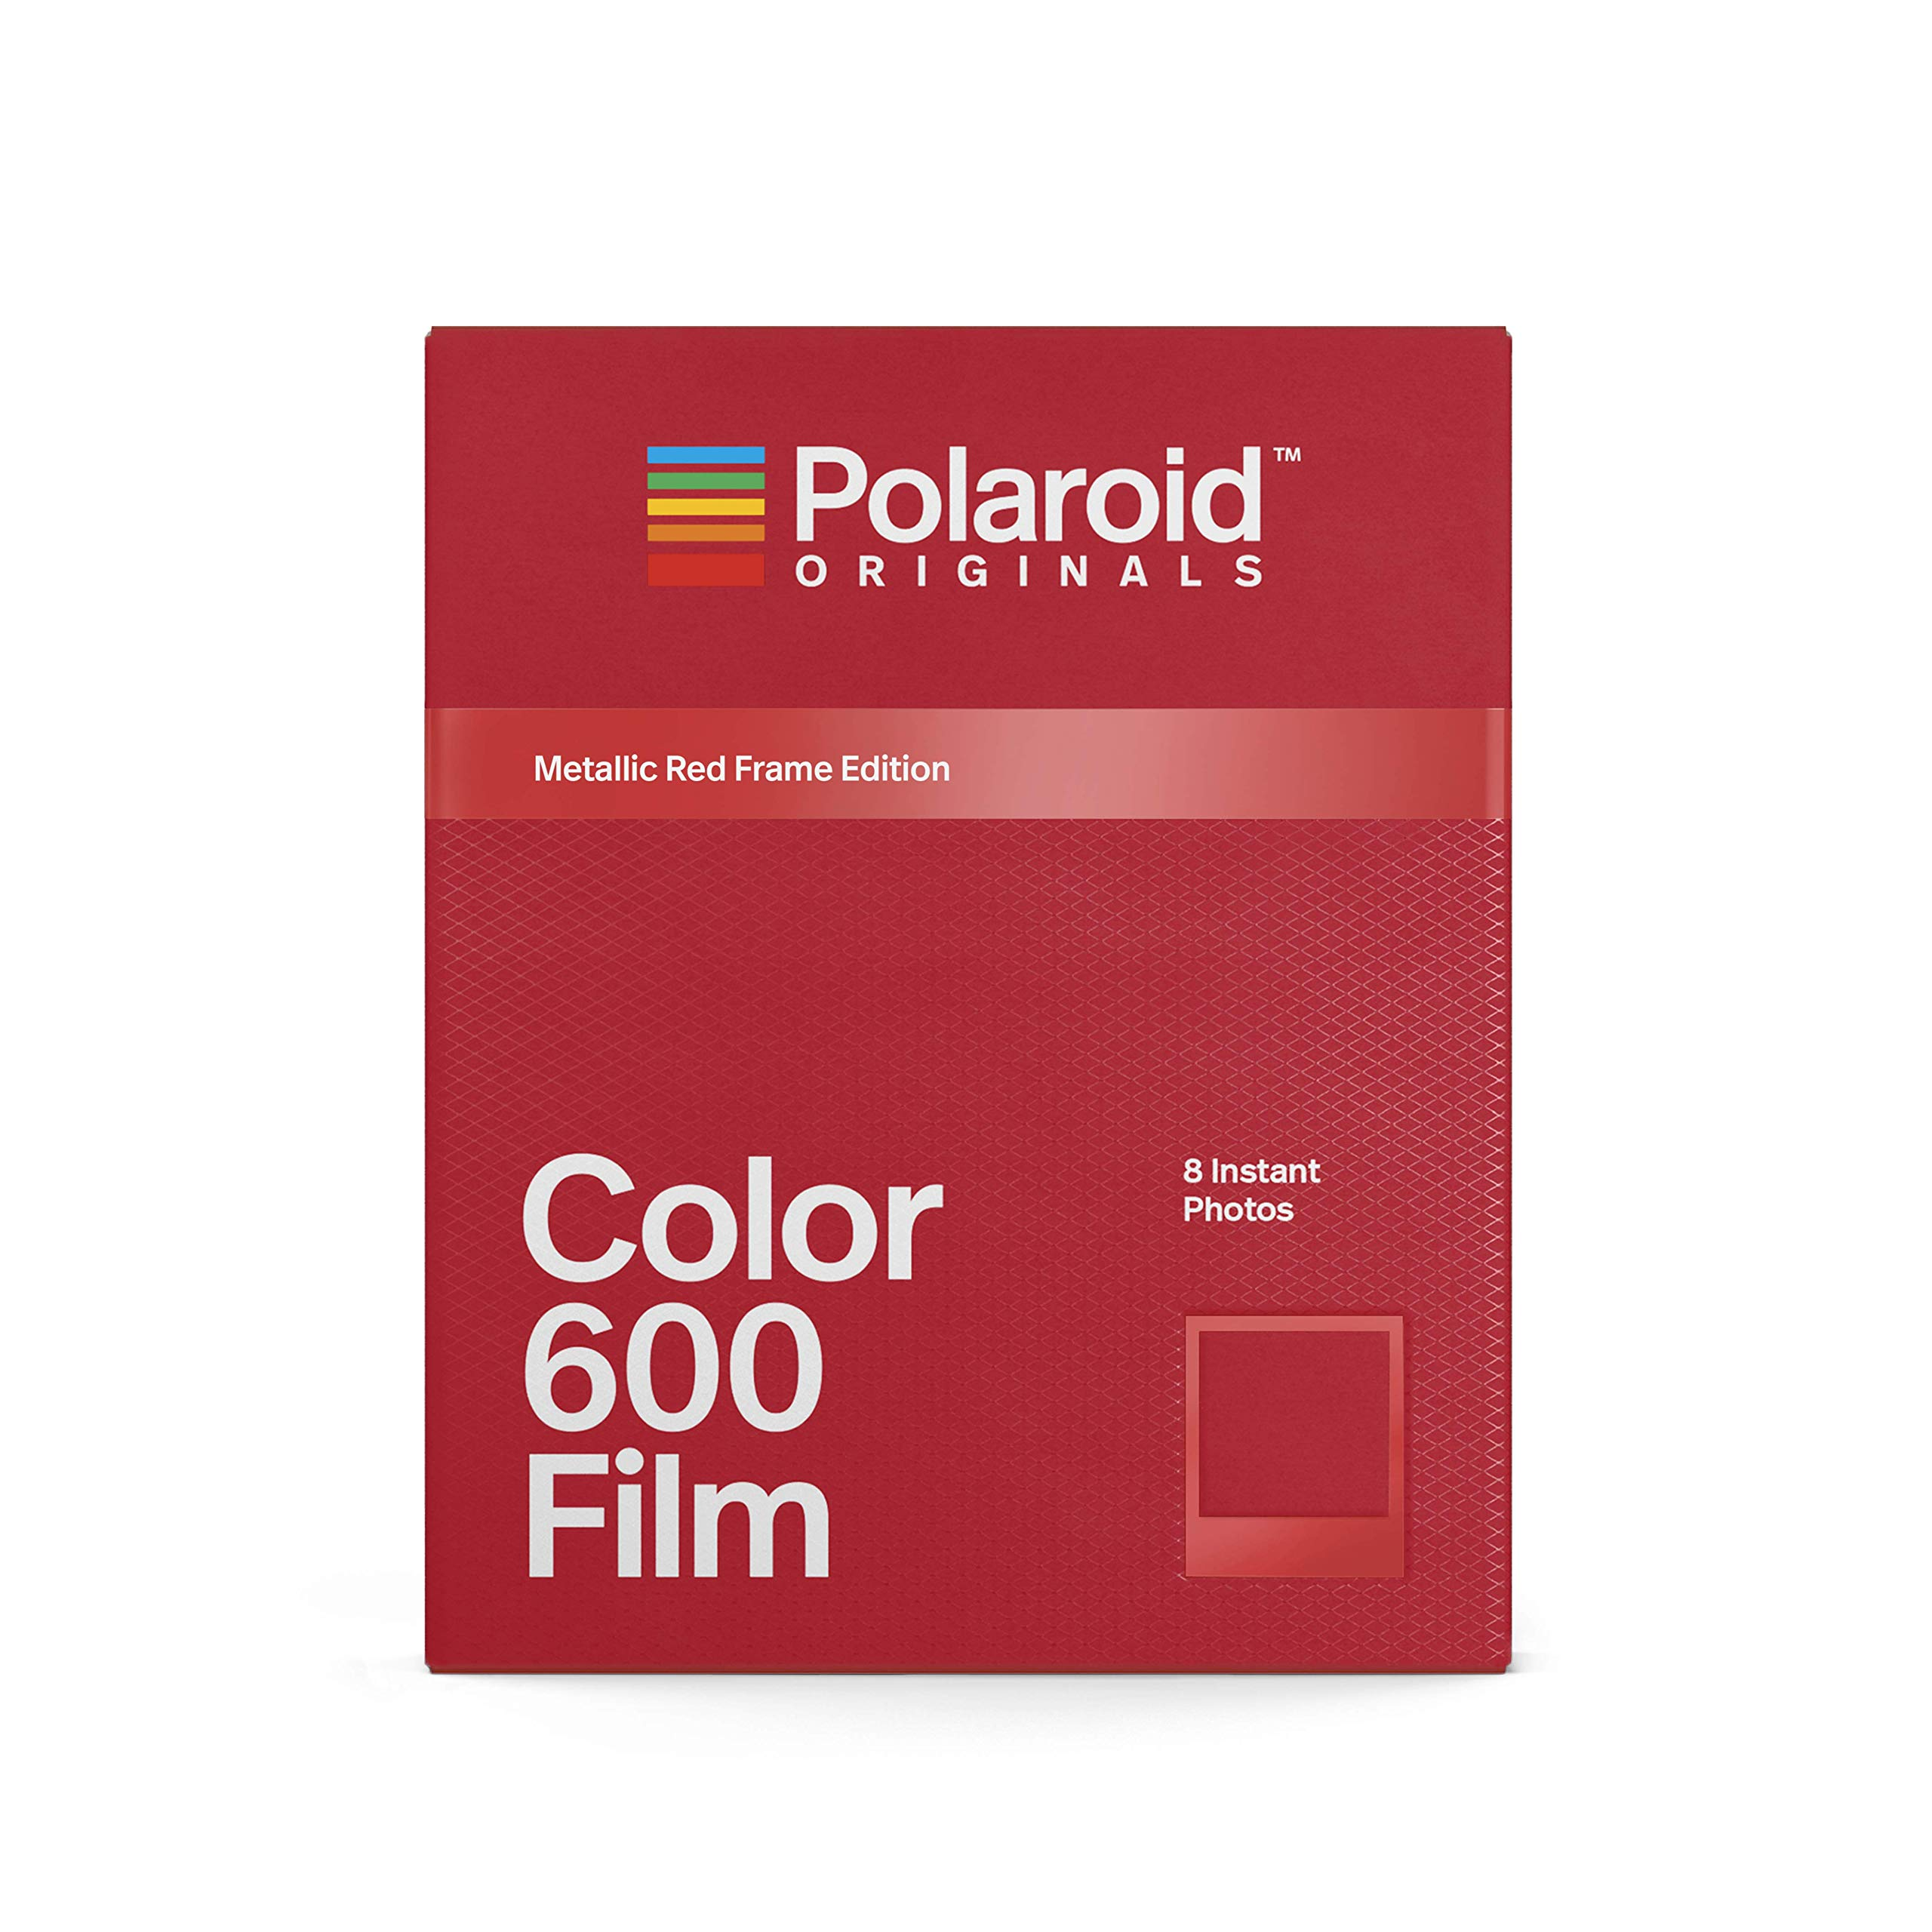 Polaroid Originals Limited Edition Color Film for 600 - Metallic Red Frame Edition (4858)